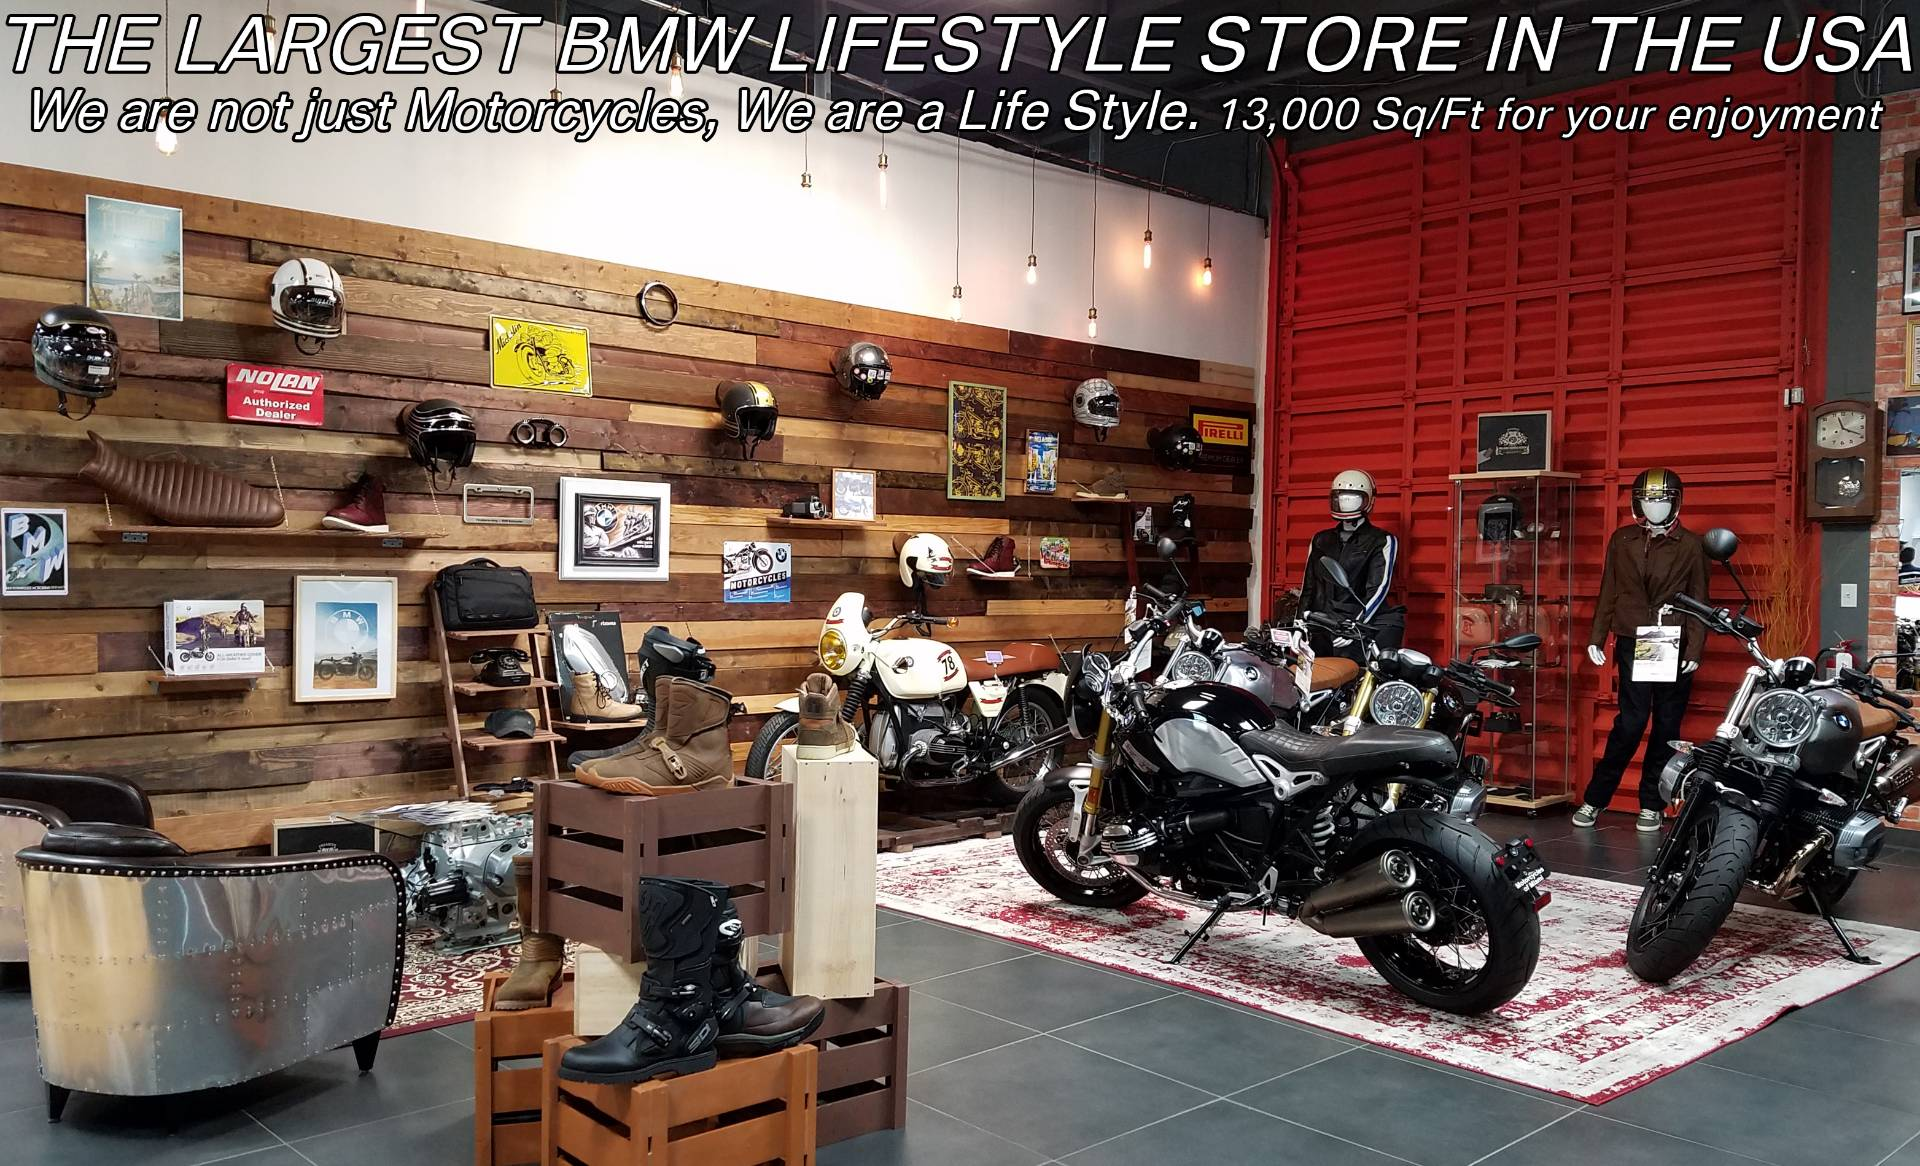 New 2019 BMW F 850 GSA for sale, BMW F 850GSA for sale, BMW Motorcycle F850GSA, new BMW 850 Adventure, Adventure. BMW Motorcycles of Miami, Motorcycles of Miami, Motorcycles Miami, New Motorcycles, Used Motorcycles, pre-owned. #BMWMotorcyclesOfMiami #MotorcyclesOfMiami #MotorcyclesMiami - Photo 45